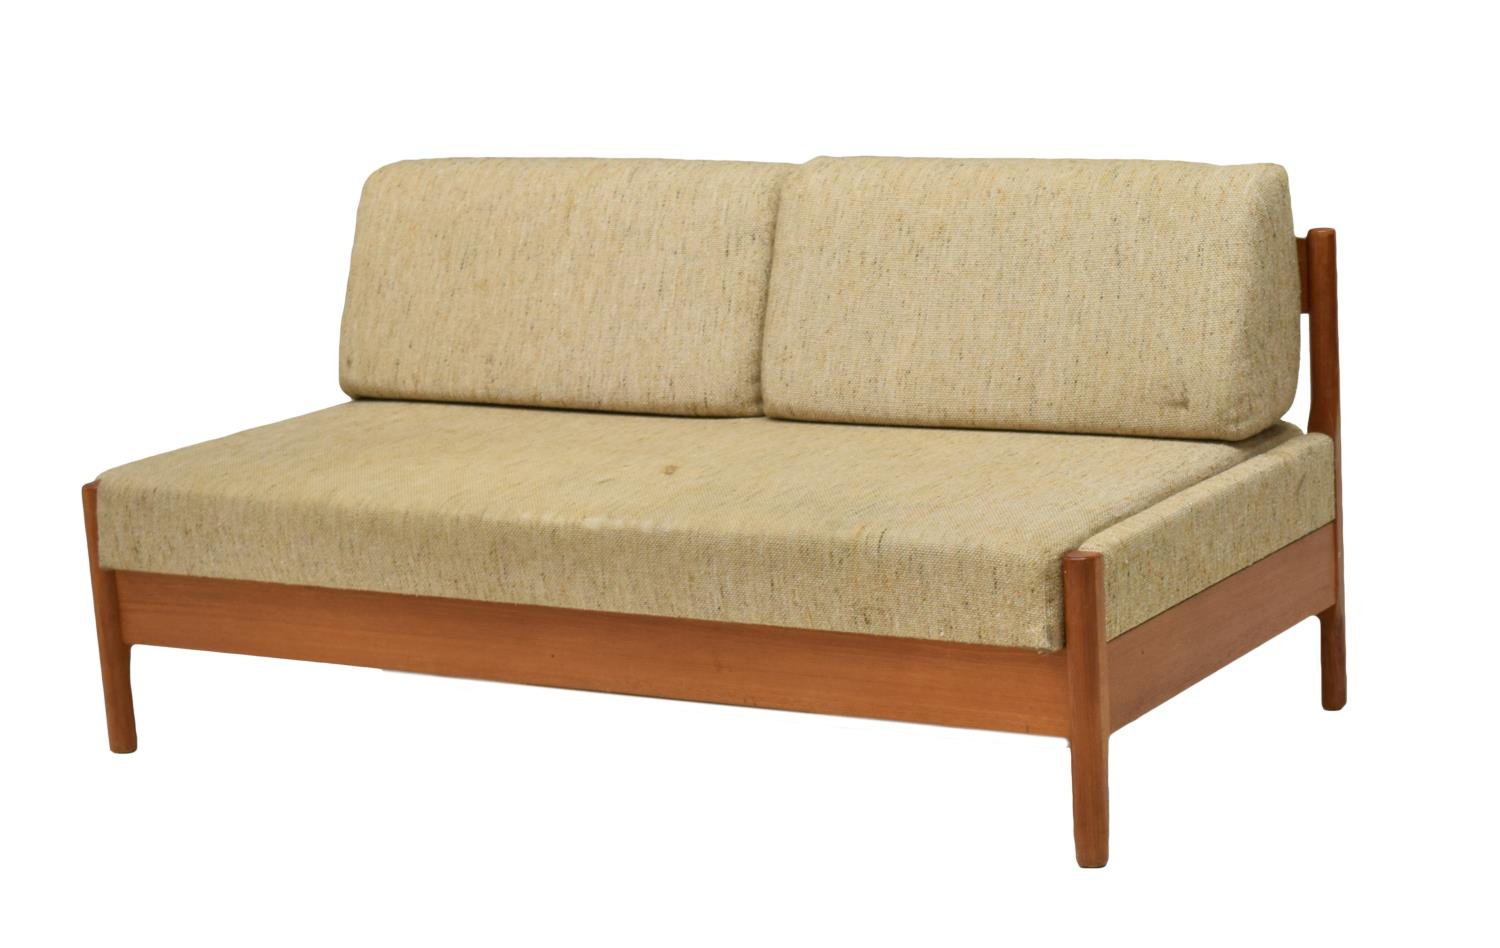 Danish mid century modern teak daybed sofa 1960 holiday for Mid century modern day bed